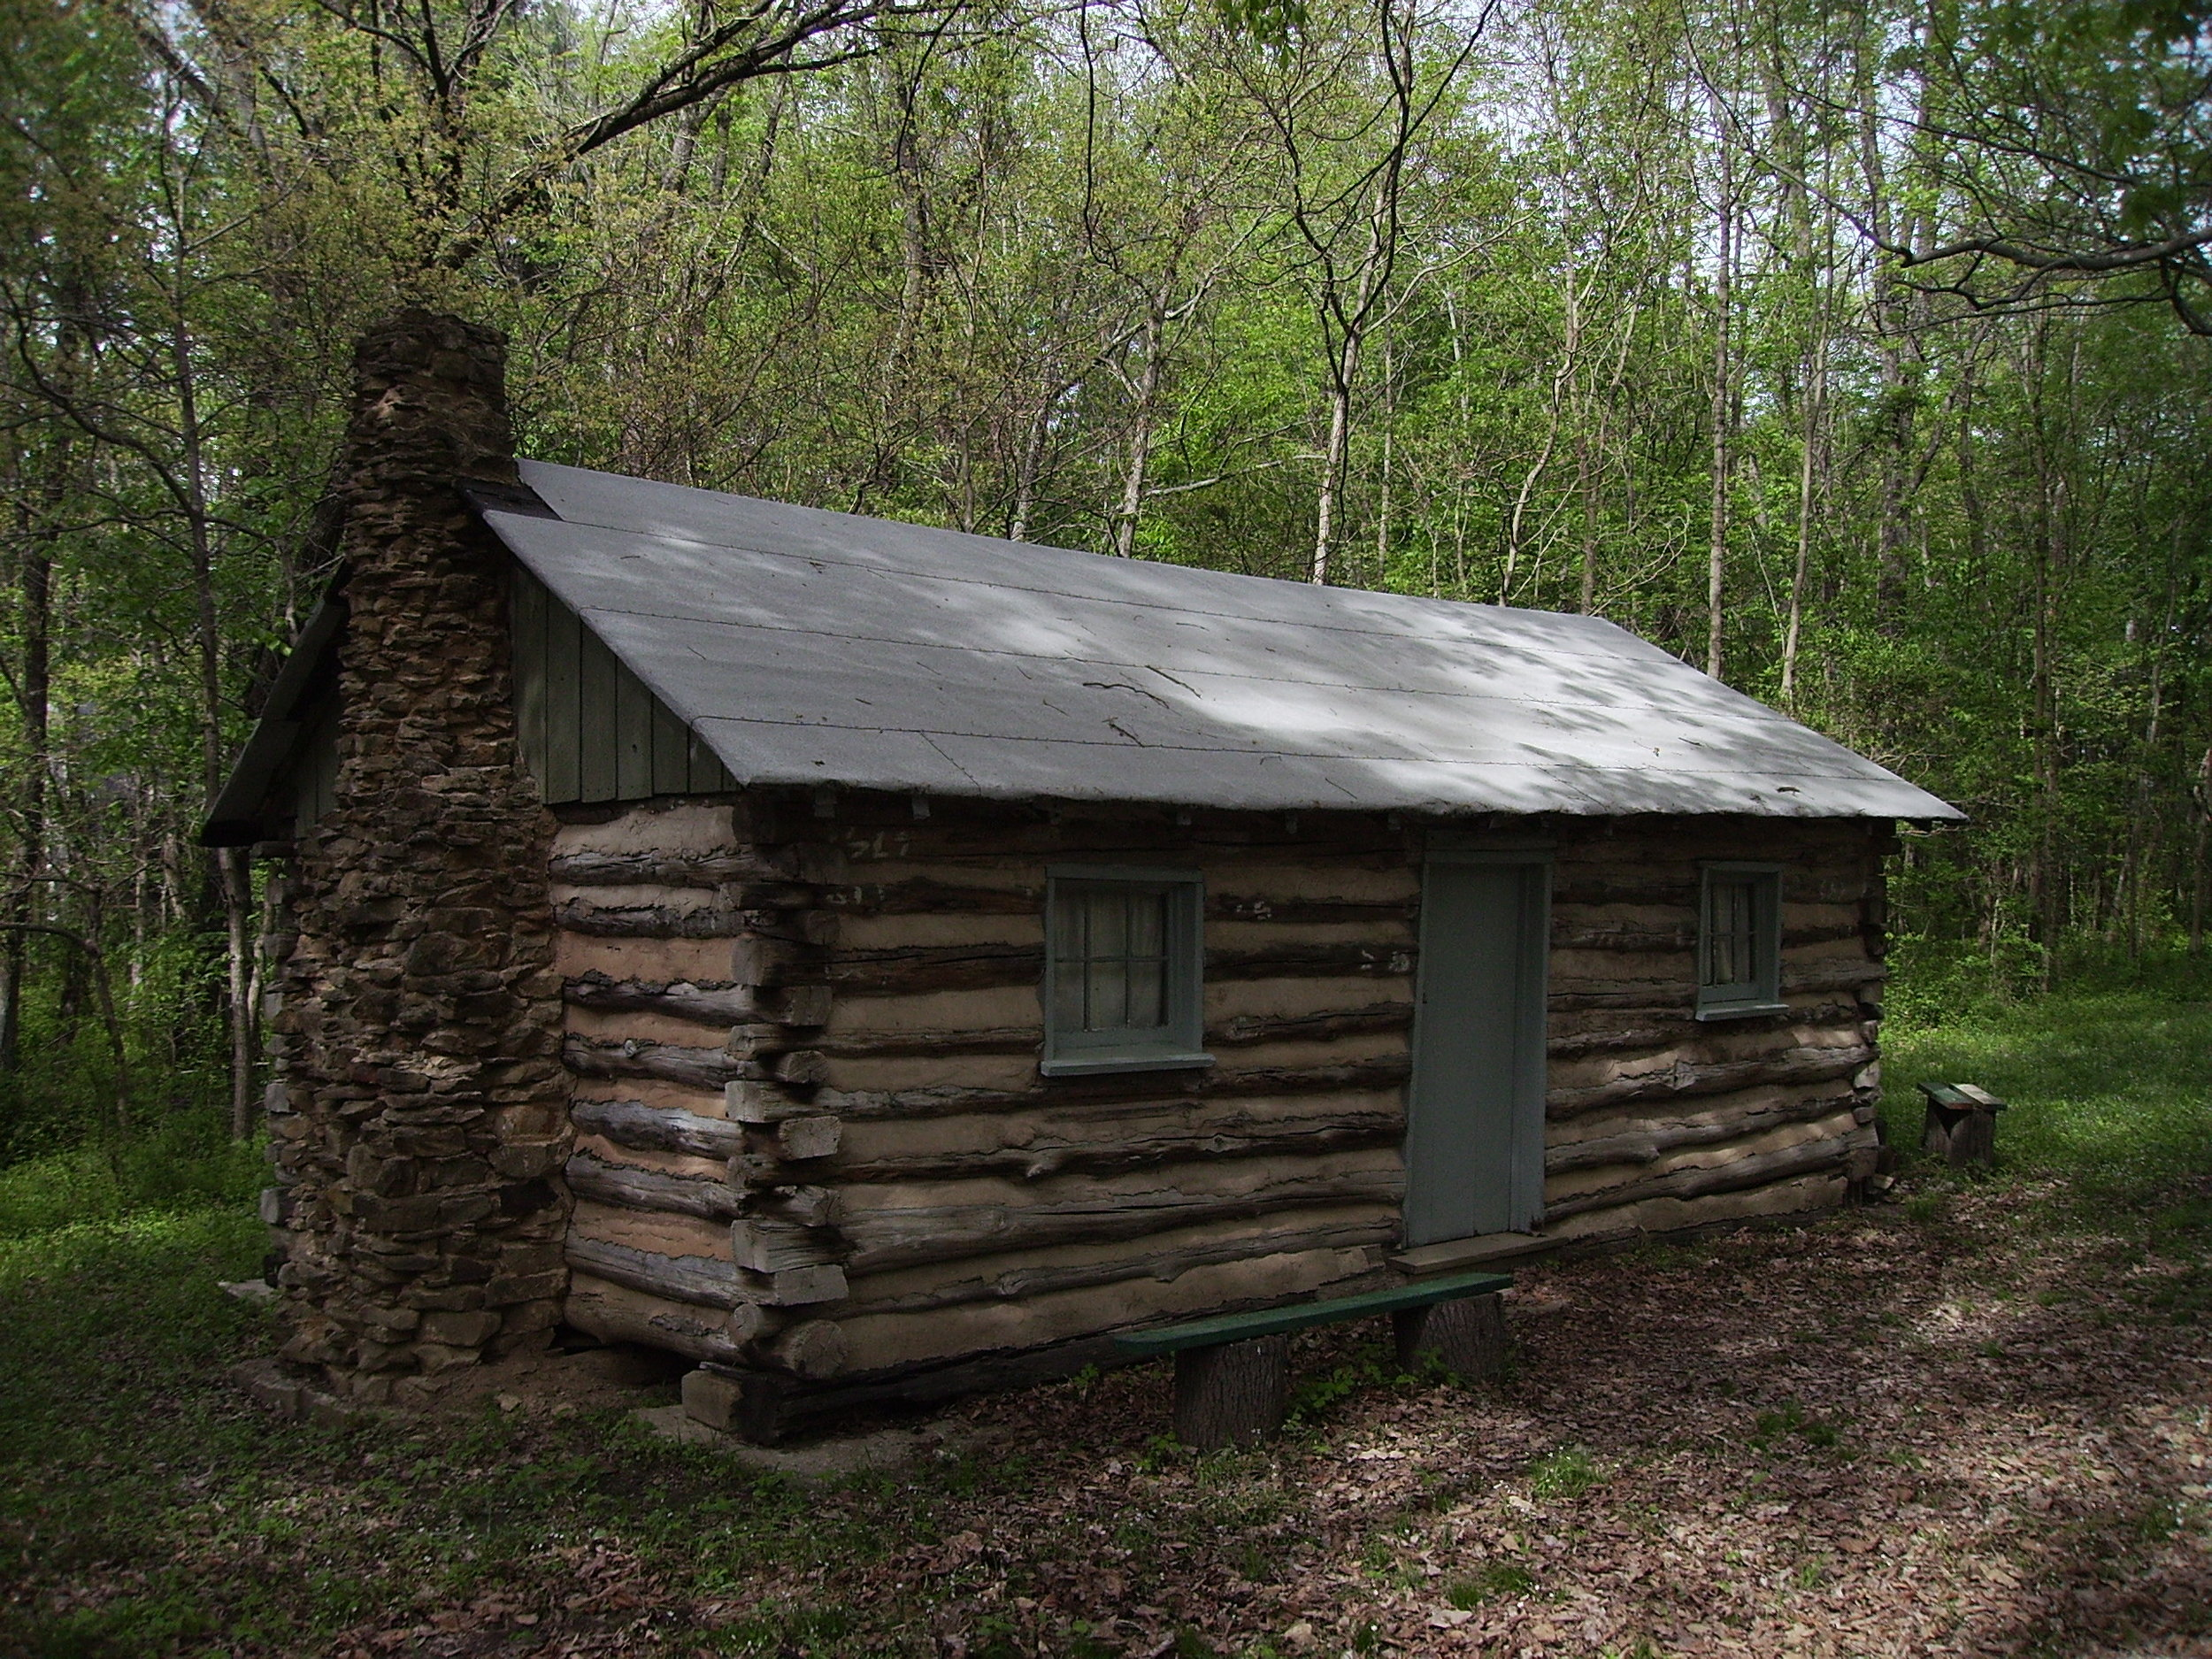 Preacher/Wagoner Cabin - The preacher's cabin was located near Forbes Lake. It was built for a circuit rider of the Methodist faith. The second preacher was a Wagoner. He also ran a sorghum mill. Preacher Wagoner added a leanto for a kitchen but this addition was not replaced since it was not part of the original cabin. The third preacher was Reverend Miller.Russell Wagoner moved into this home with his father, mother and older brother as a small child of two years in 1939. Russell, nicknamed Cotton, lived here a short time. The cabin had belonged to his great grandfather, Steven Jacob WagonerErma Ingram purchased the log cabin when the Forbes Lake was being built.